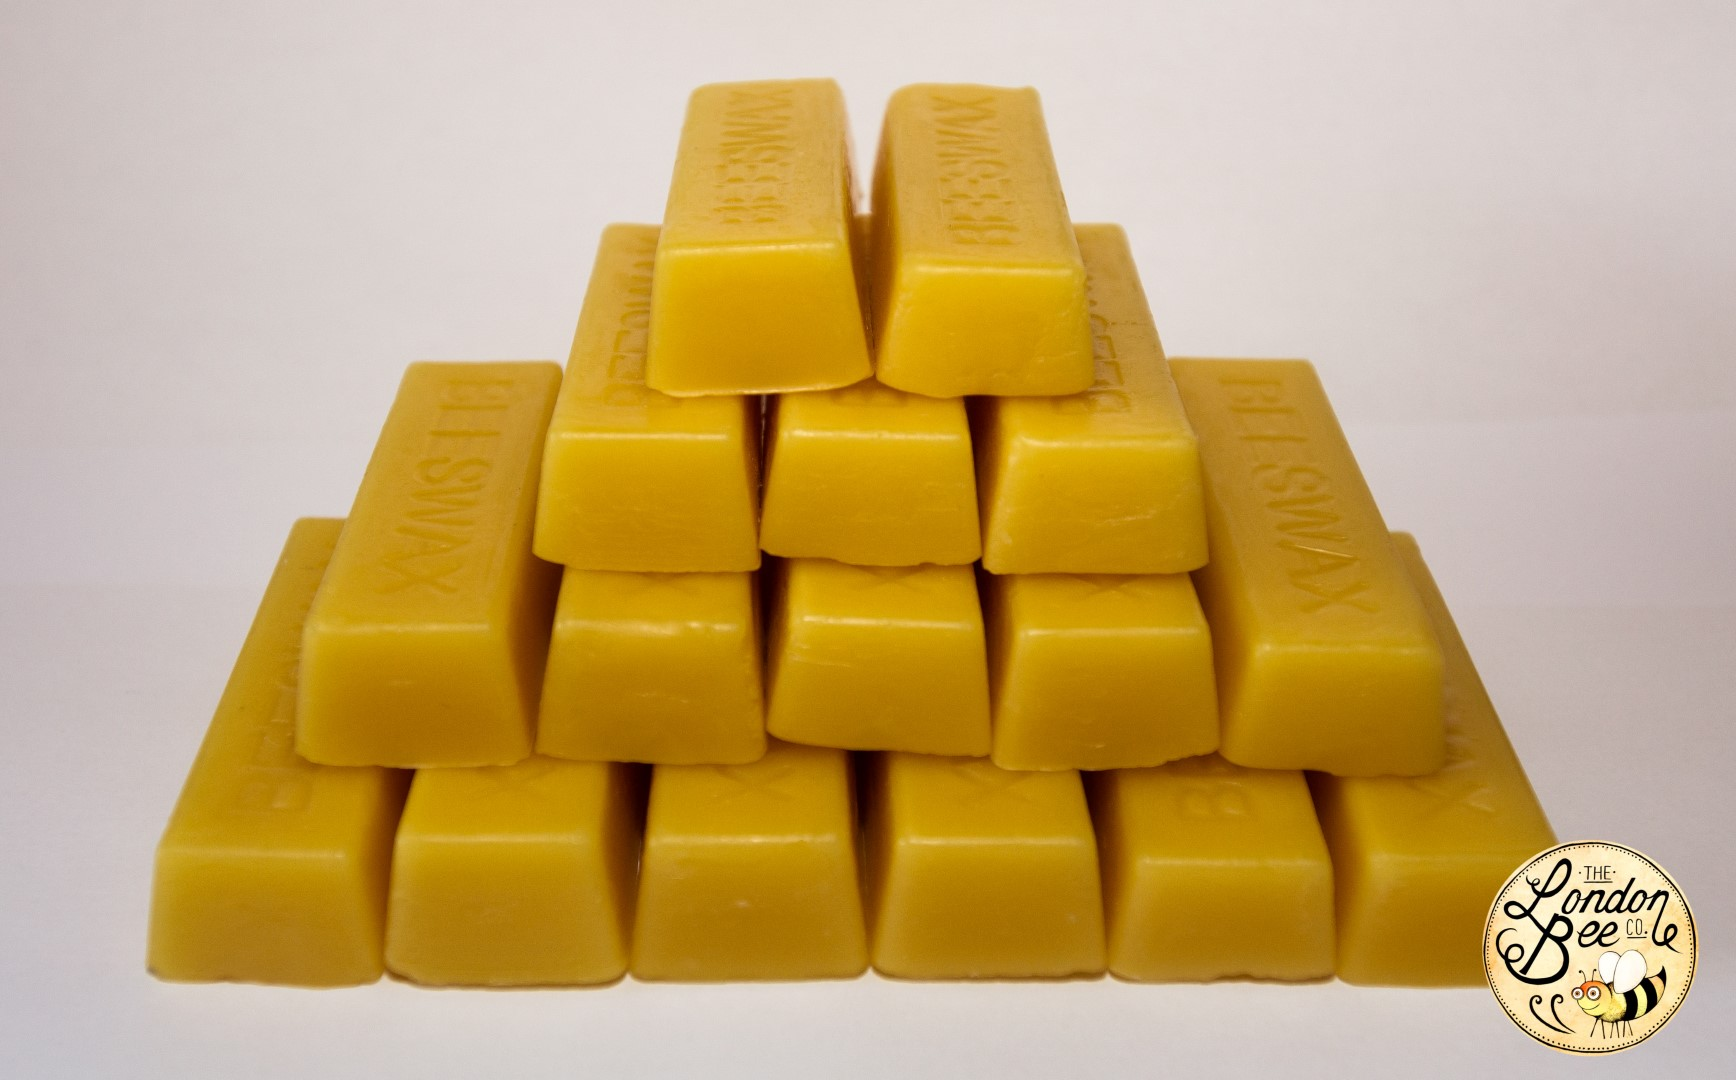 454g (1lb) Beeswax In Blocks The London Bee Company. Full resolution  portraiture, nominally Width 1736 Height 1080 pixels, portraiture with #793D01.